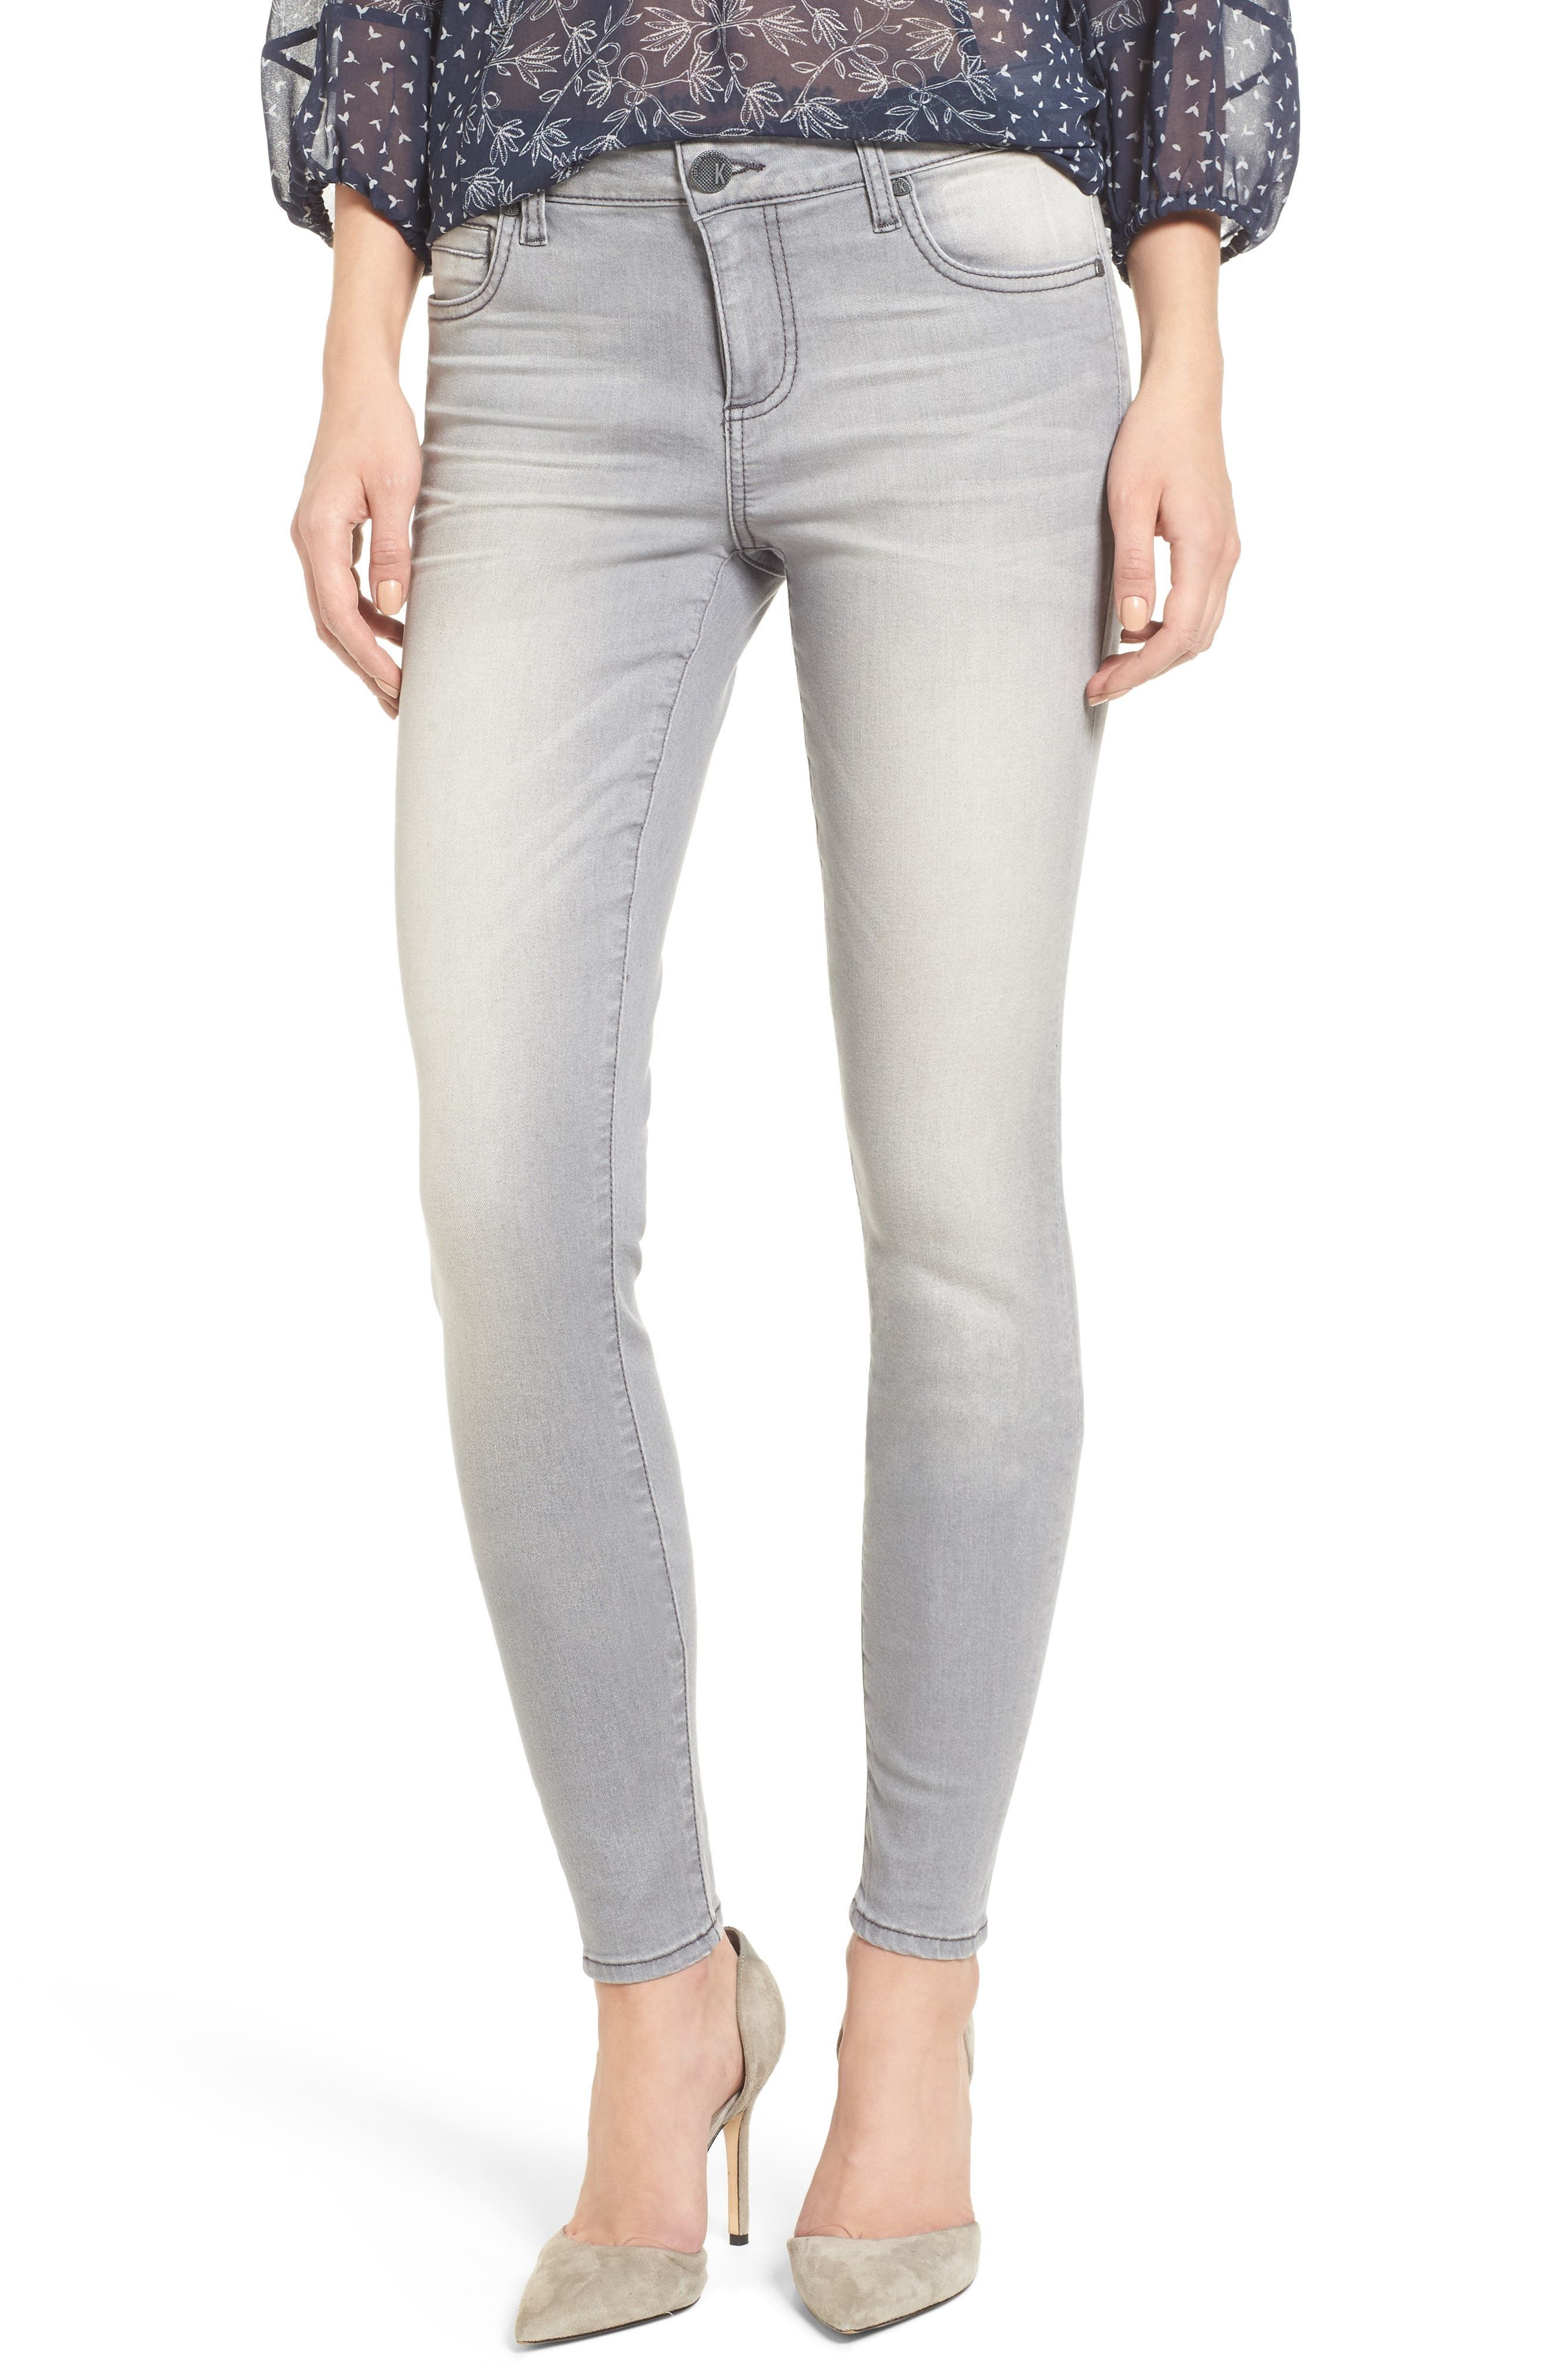 Alternate Image 1 Selected - Kut from the Kloth Mia Skinny Jeans (Prevailed)